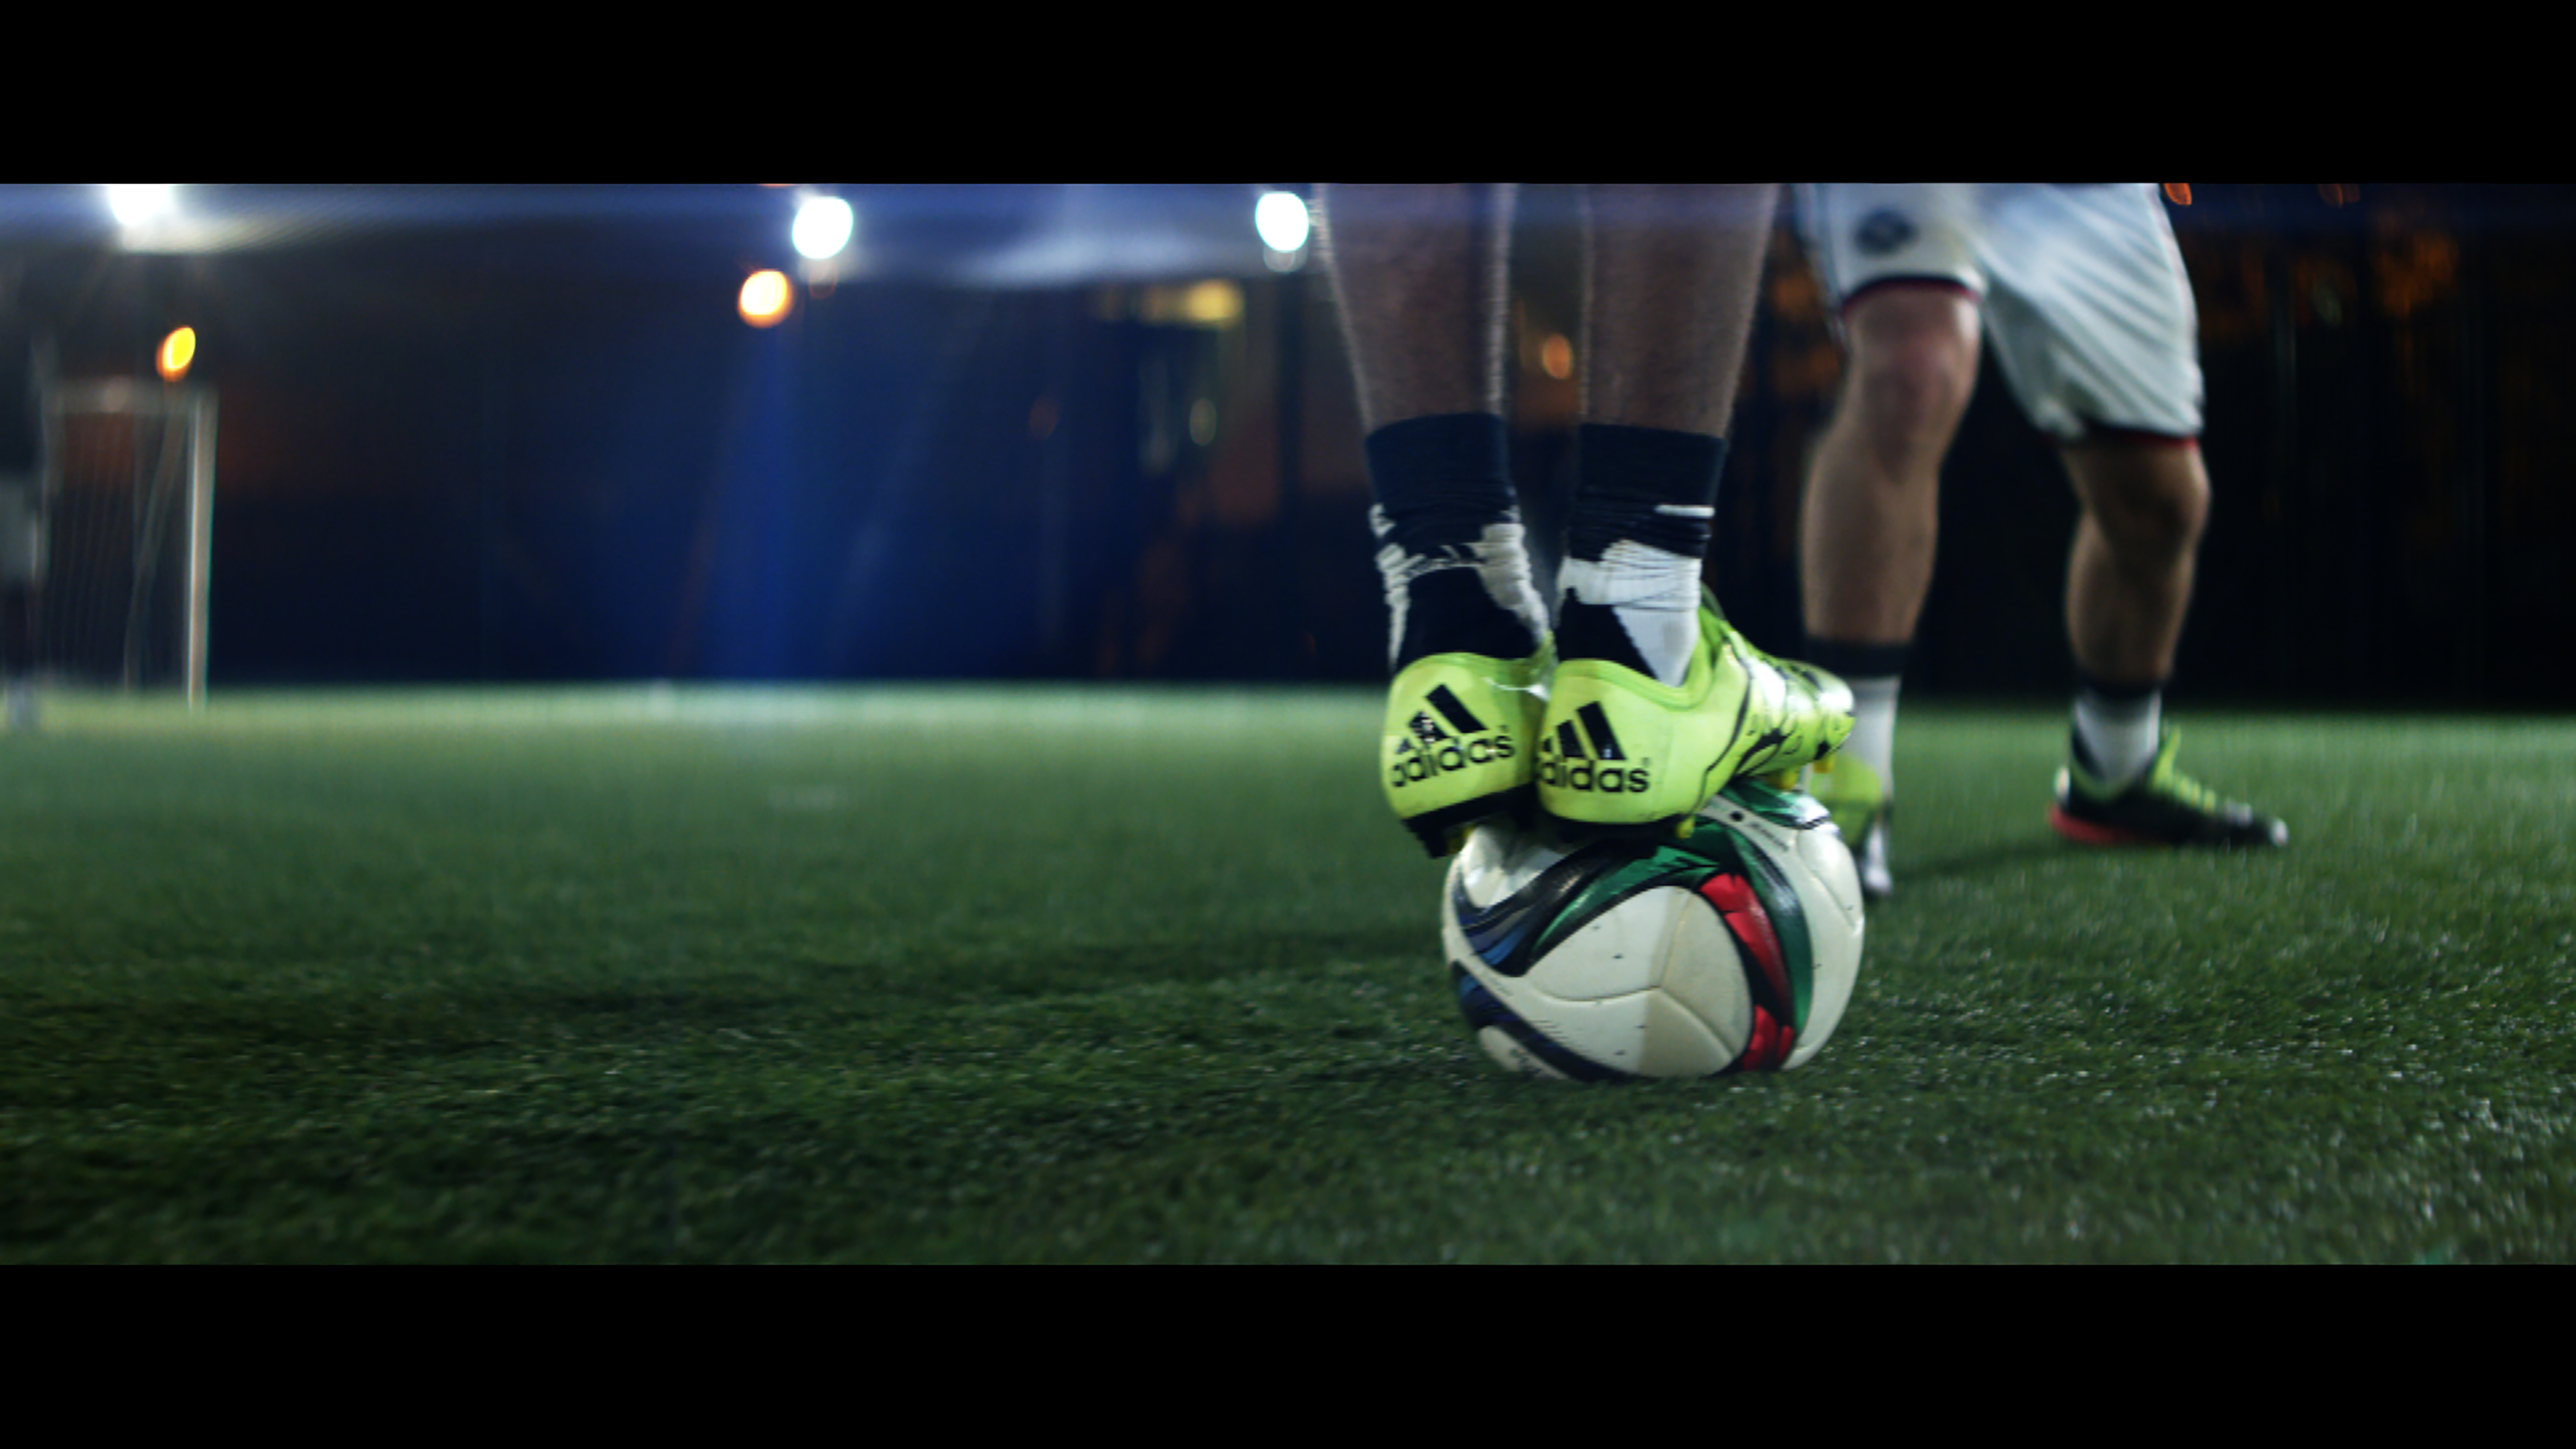 adidas create your own game commercial 2015